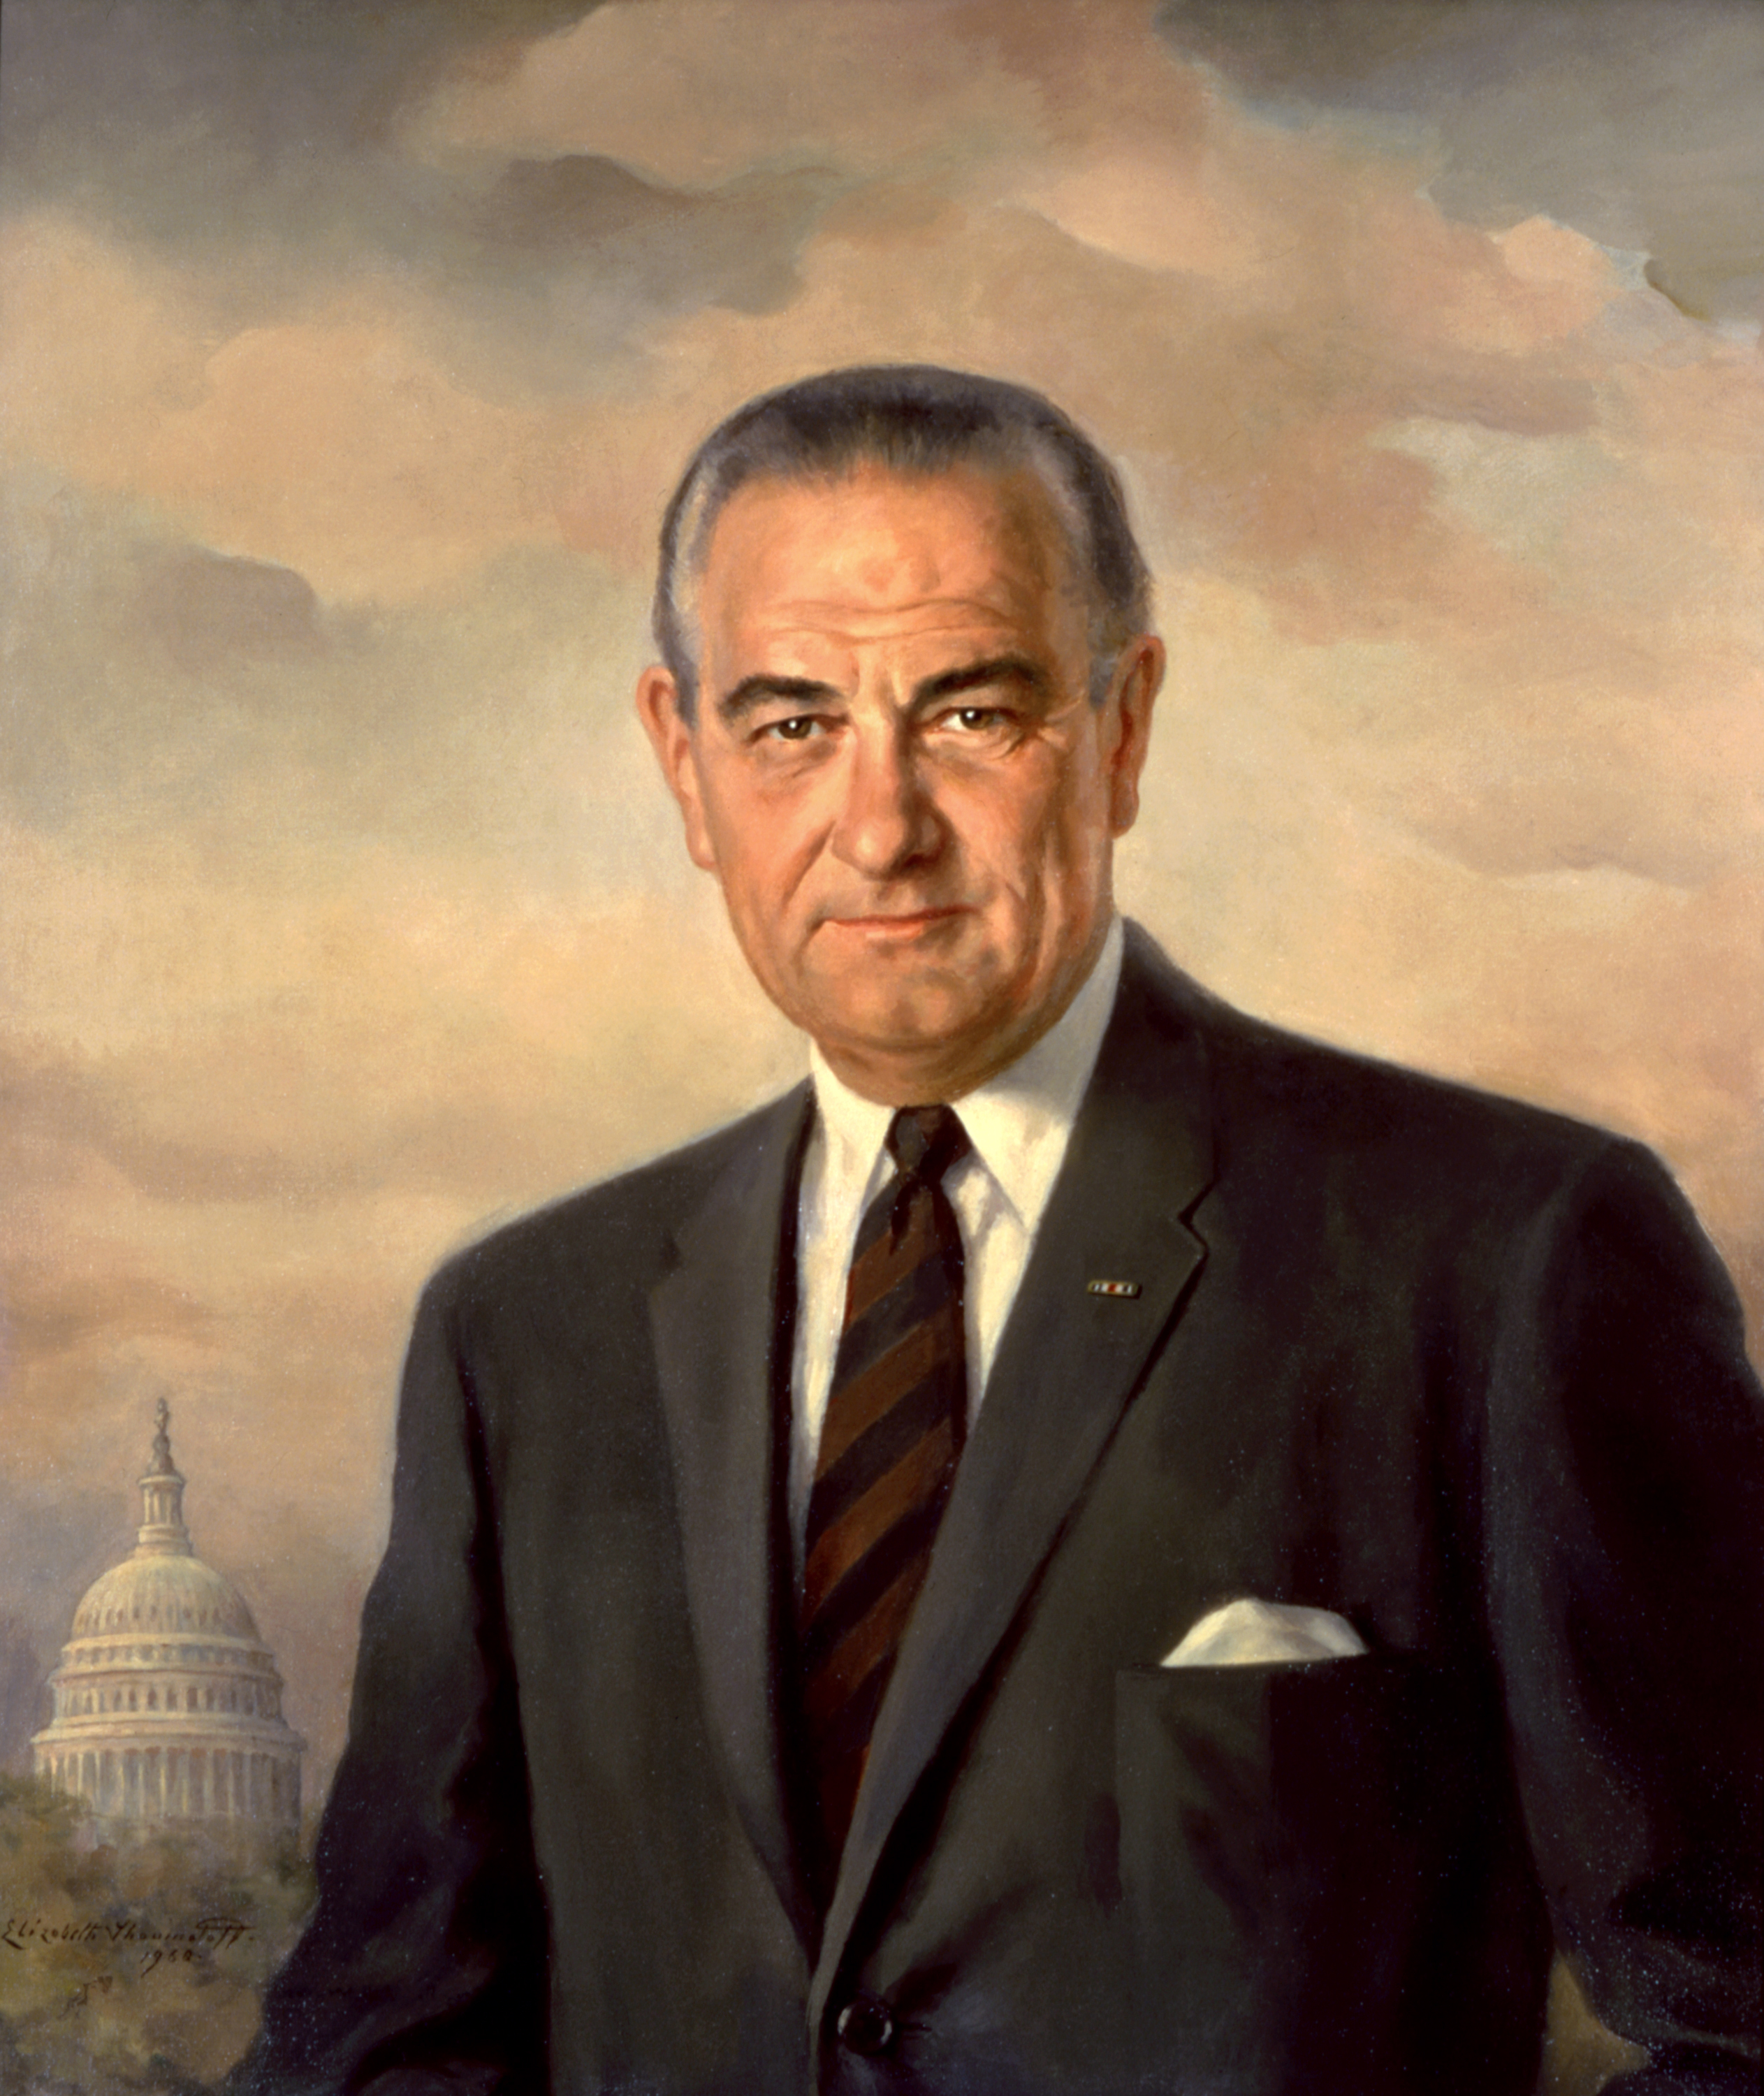 Lyndon B. Johnson's Presidency